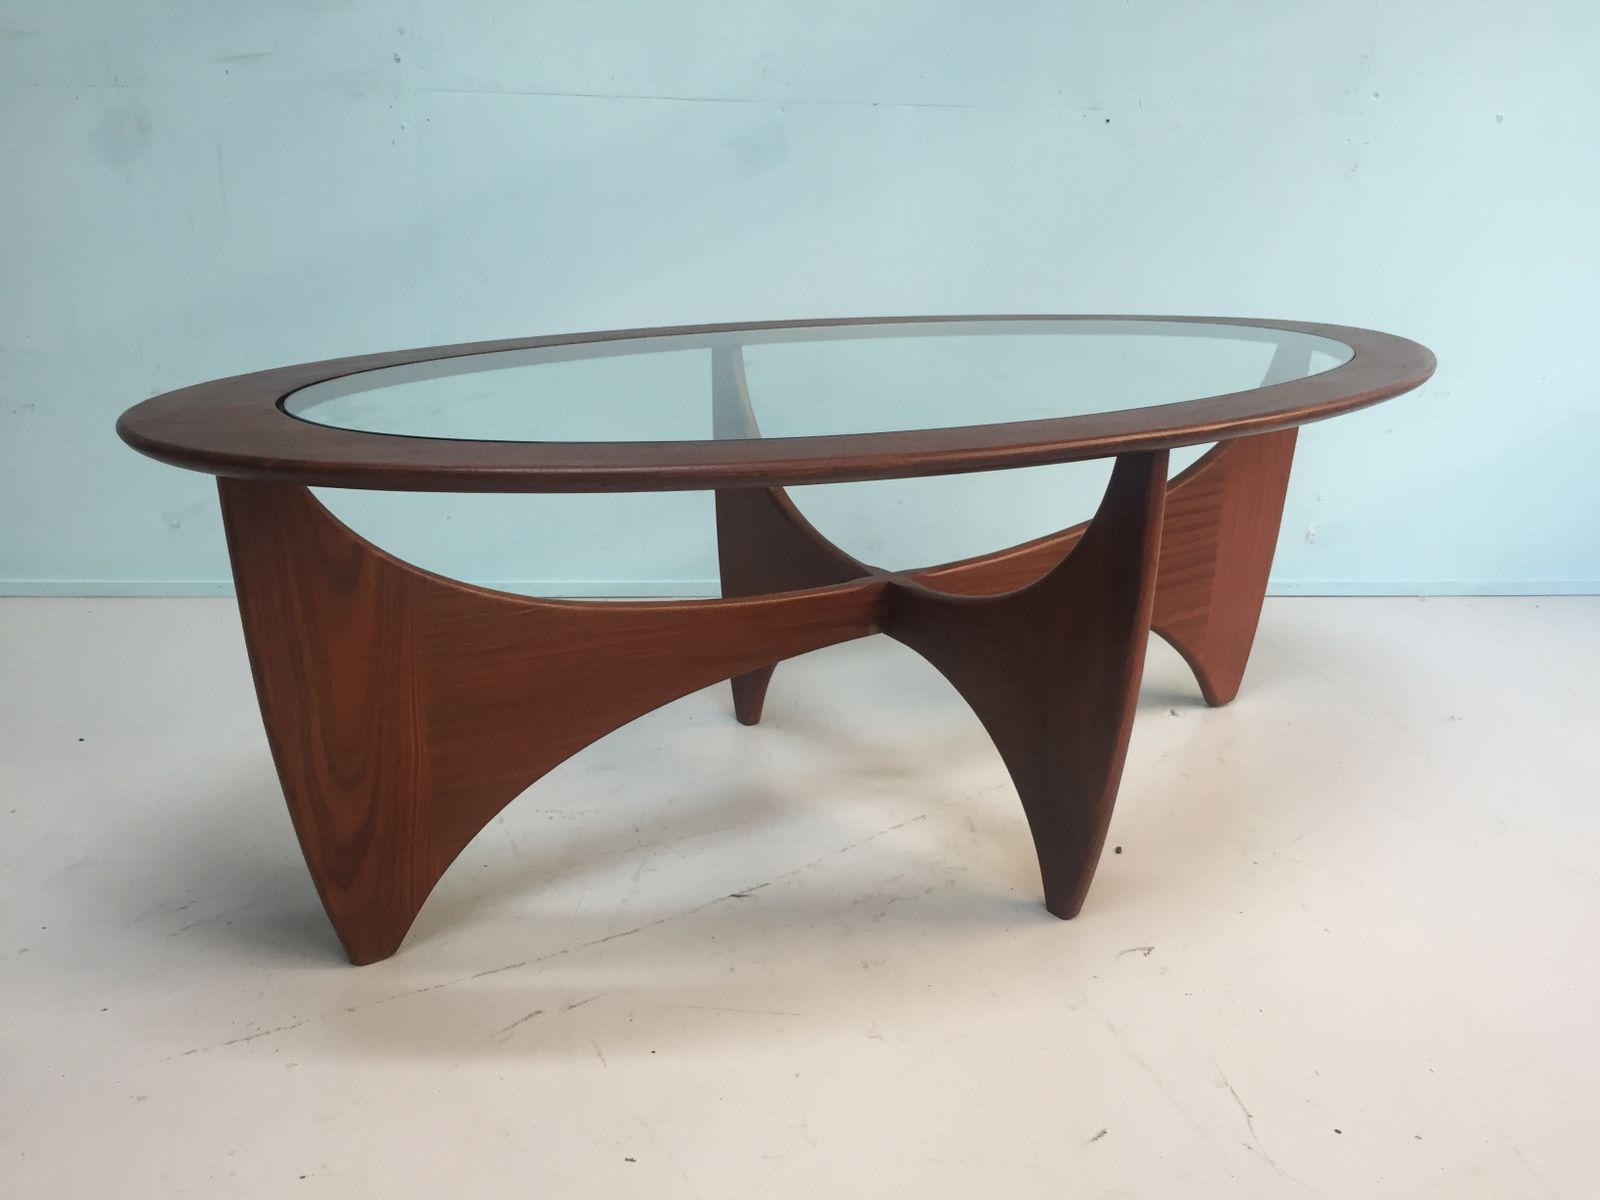 English oval solid teak coffee table from g plan 1960s for sale english oval solid teak coffee table from g plan 1960s geotapseo Gallery